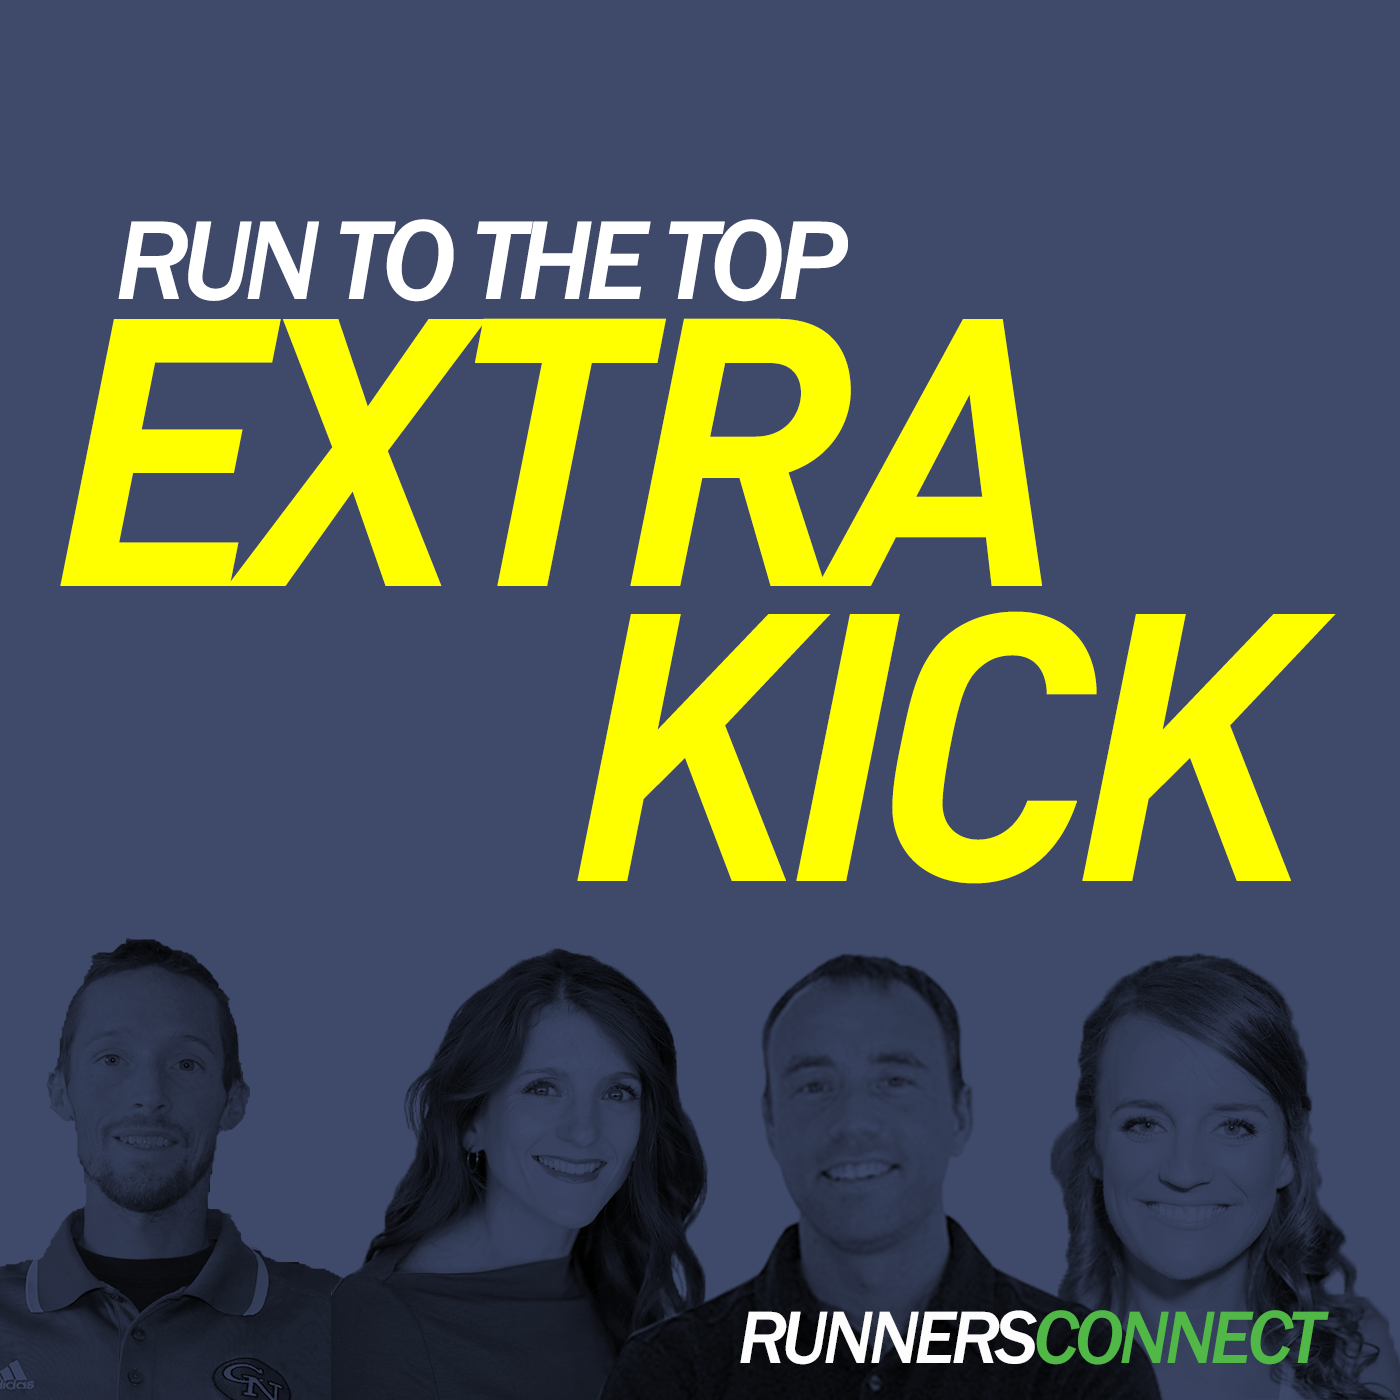 Daily Running Podcast - Runners Connect